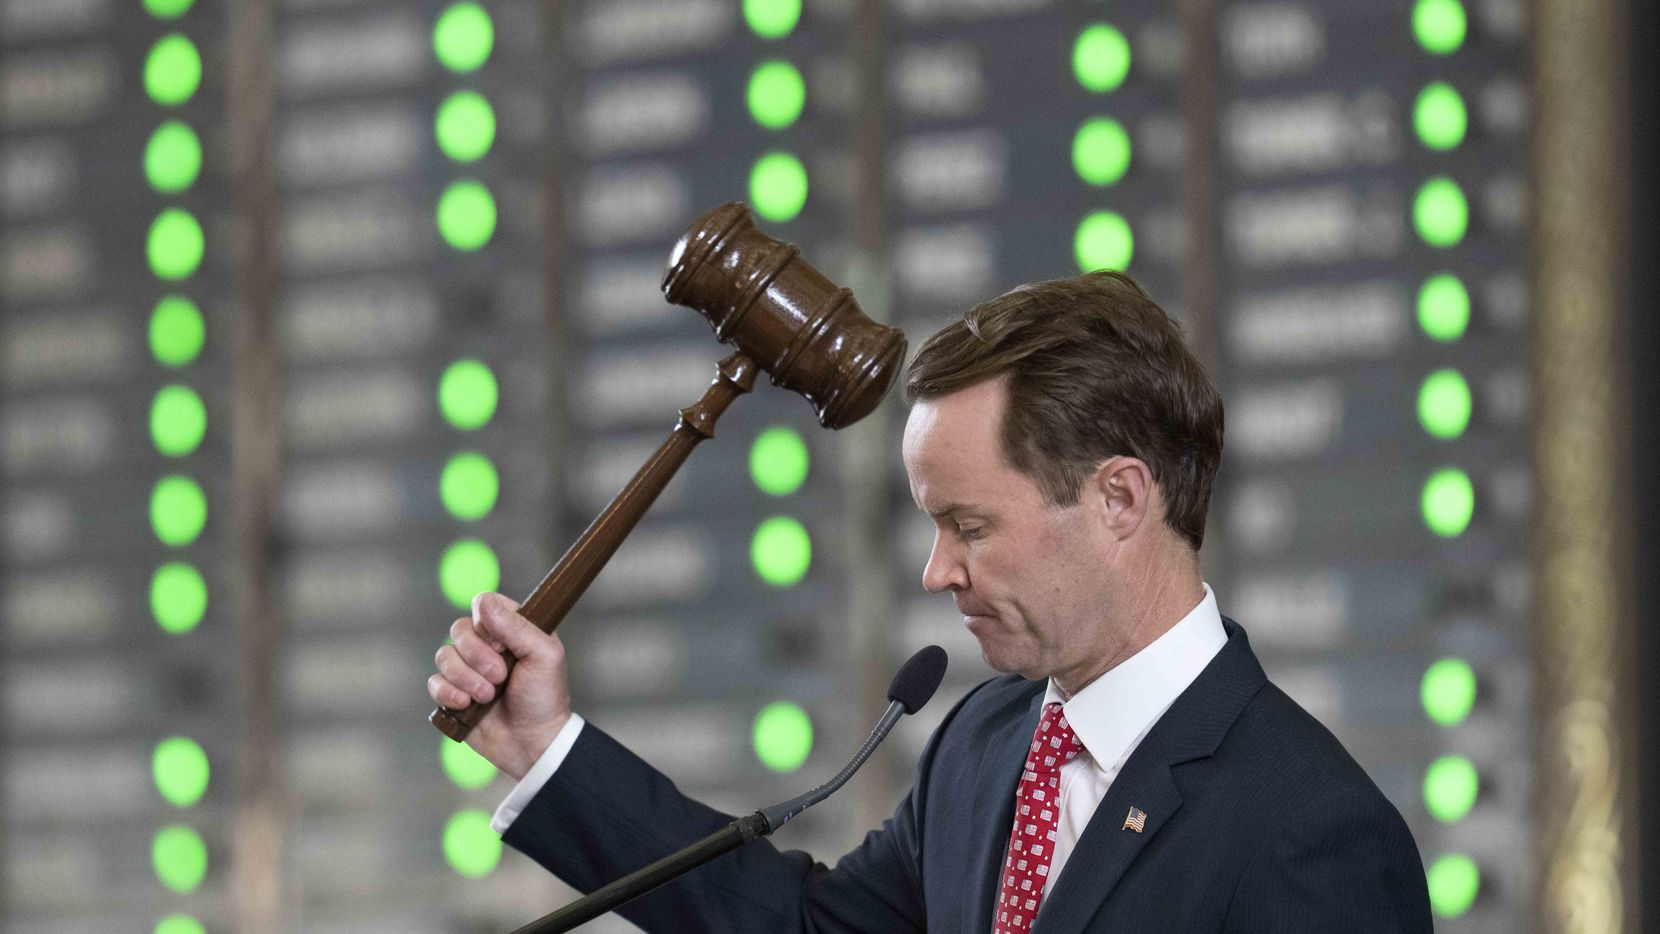 House Speaker Dade Phelan, R-Beaumont, gavels through routine procedural votes in the final minutes of the 87th legislative session that ended sine die on May 31, 2021.